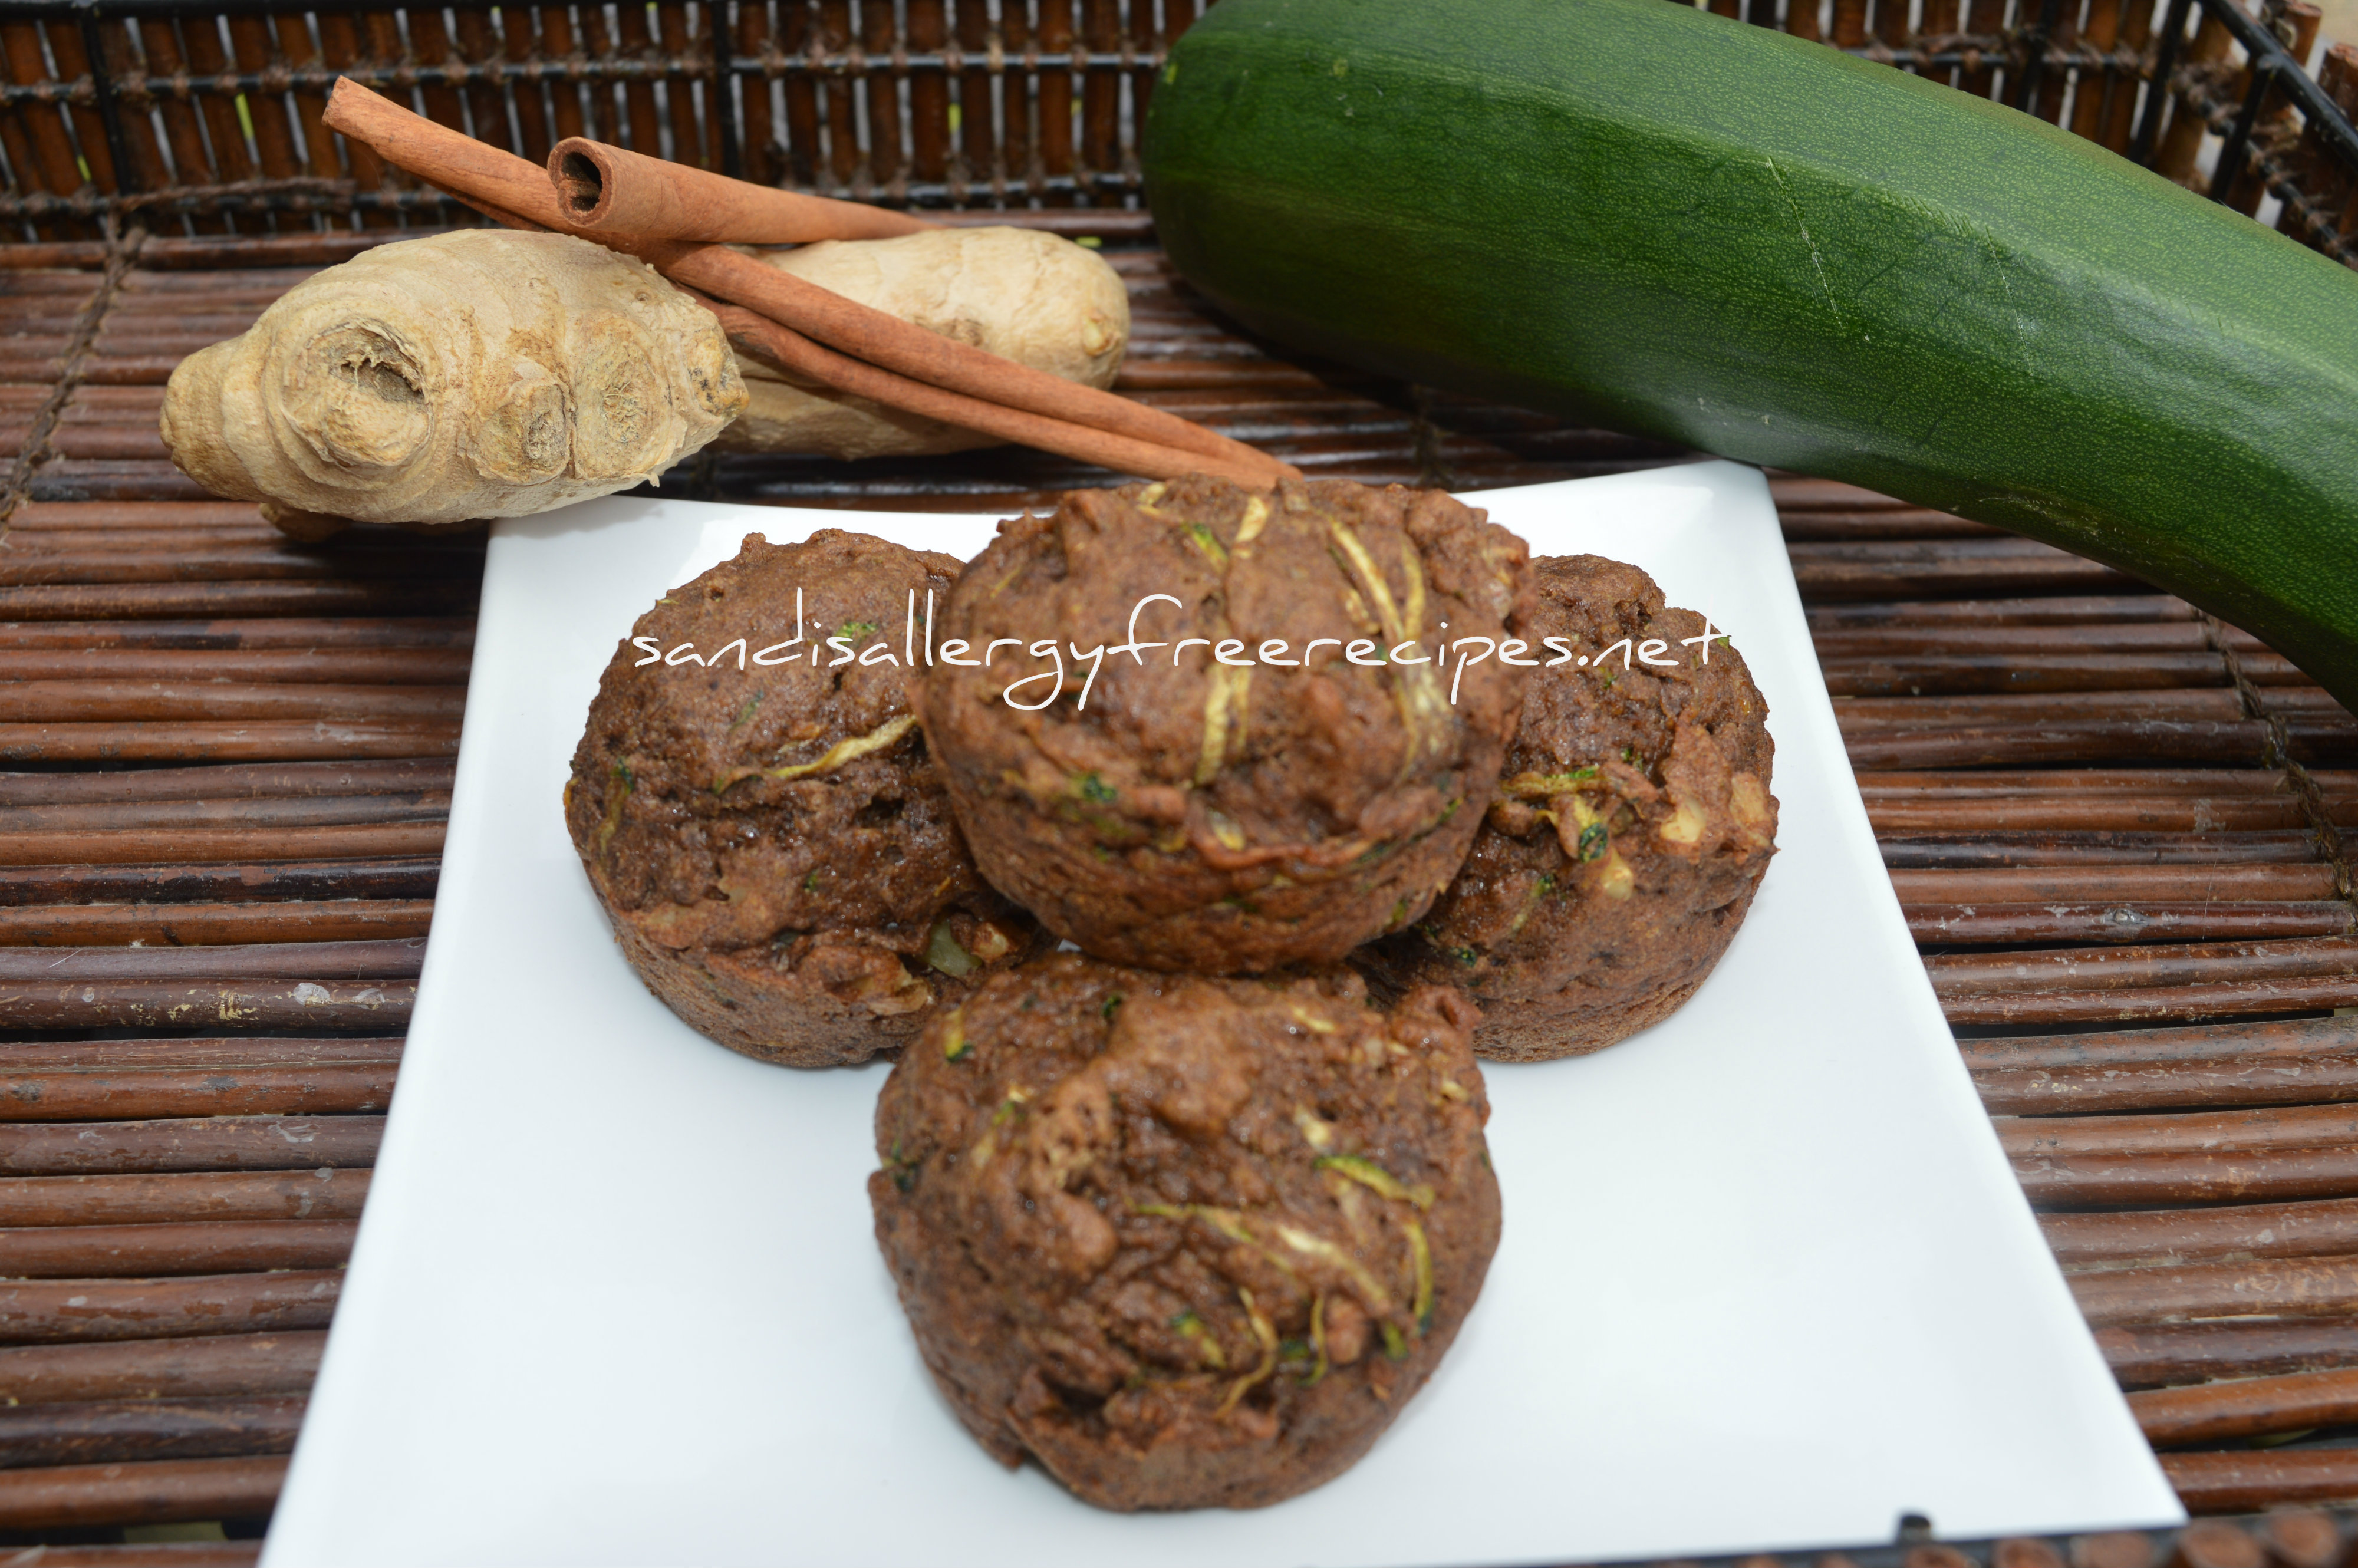 ... savory whole wheat zucchini muffins with feta parmesan and green